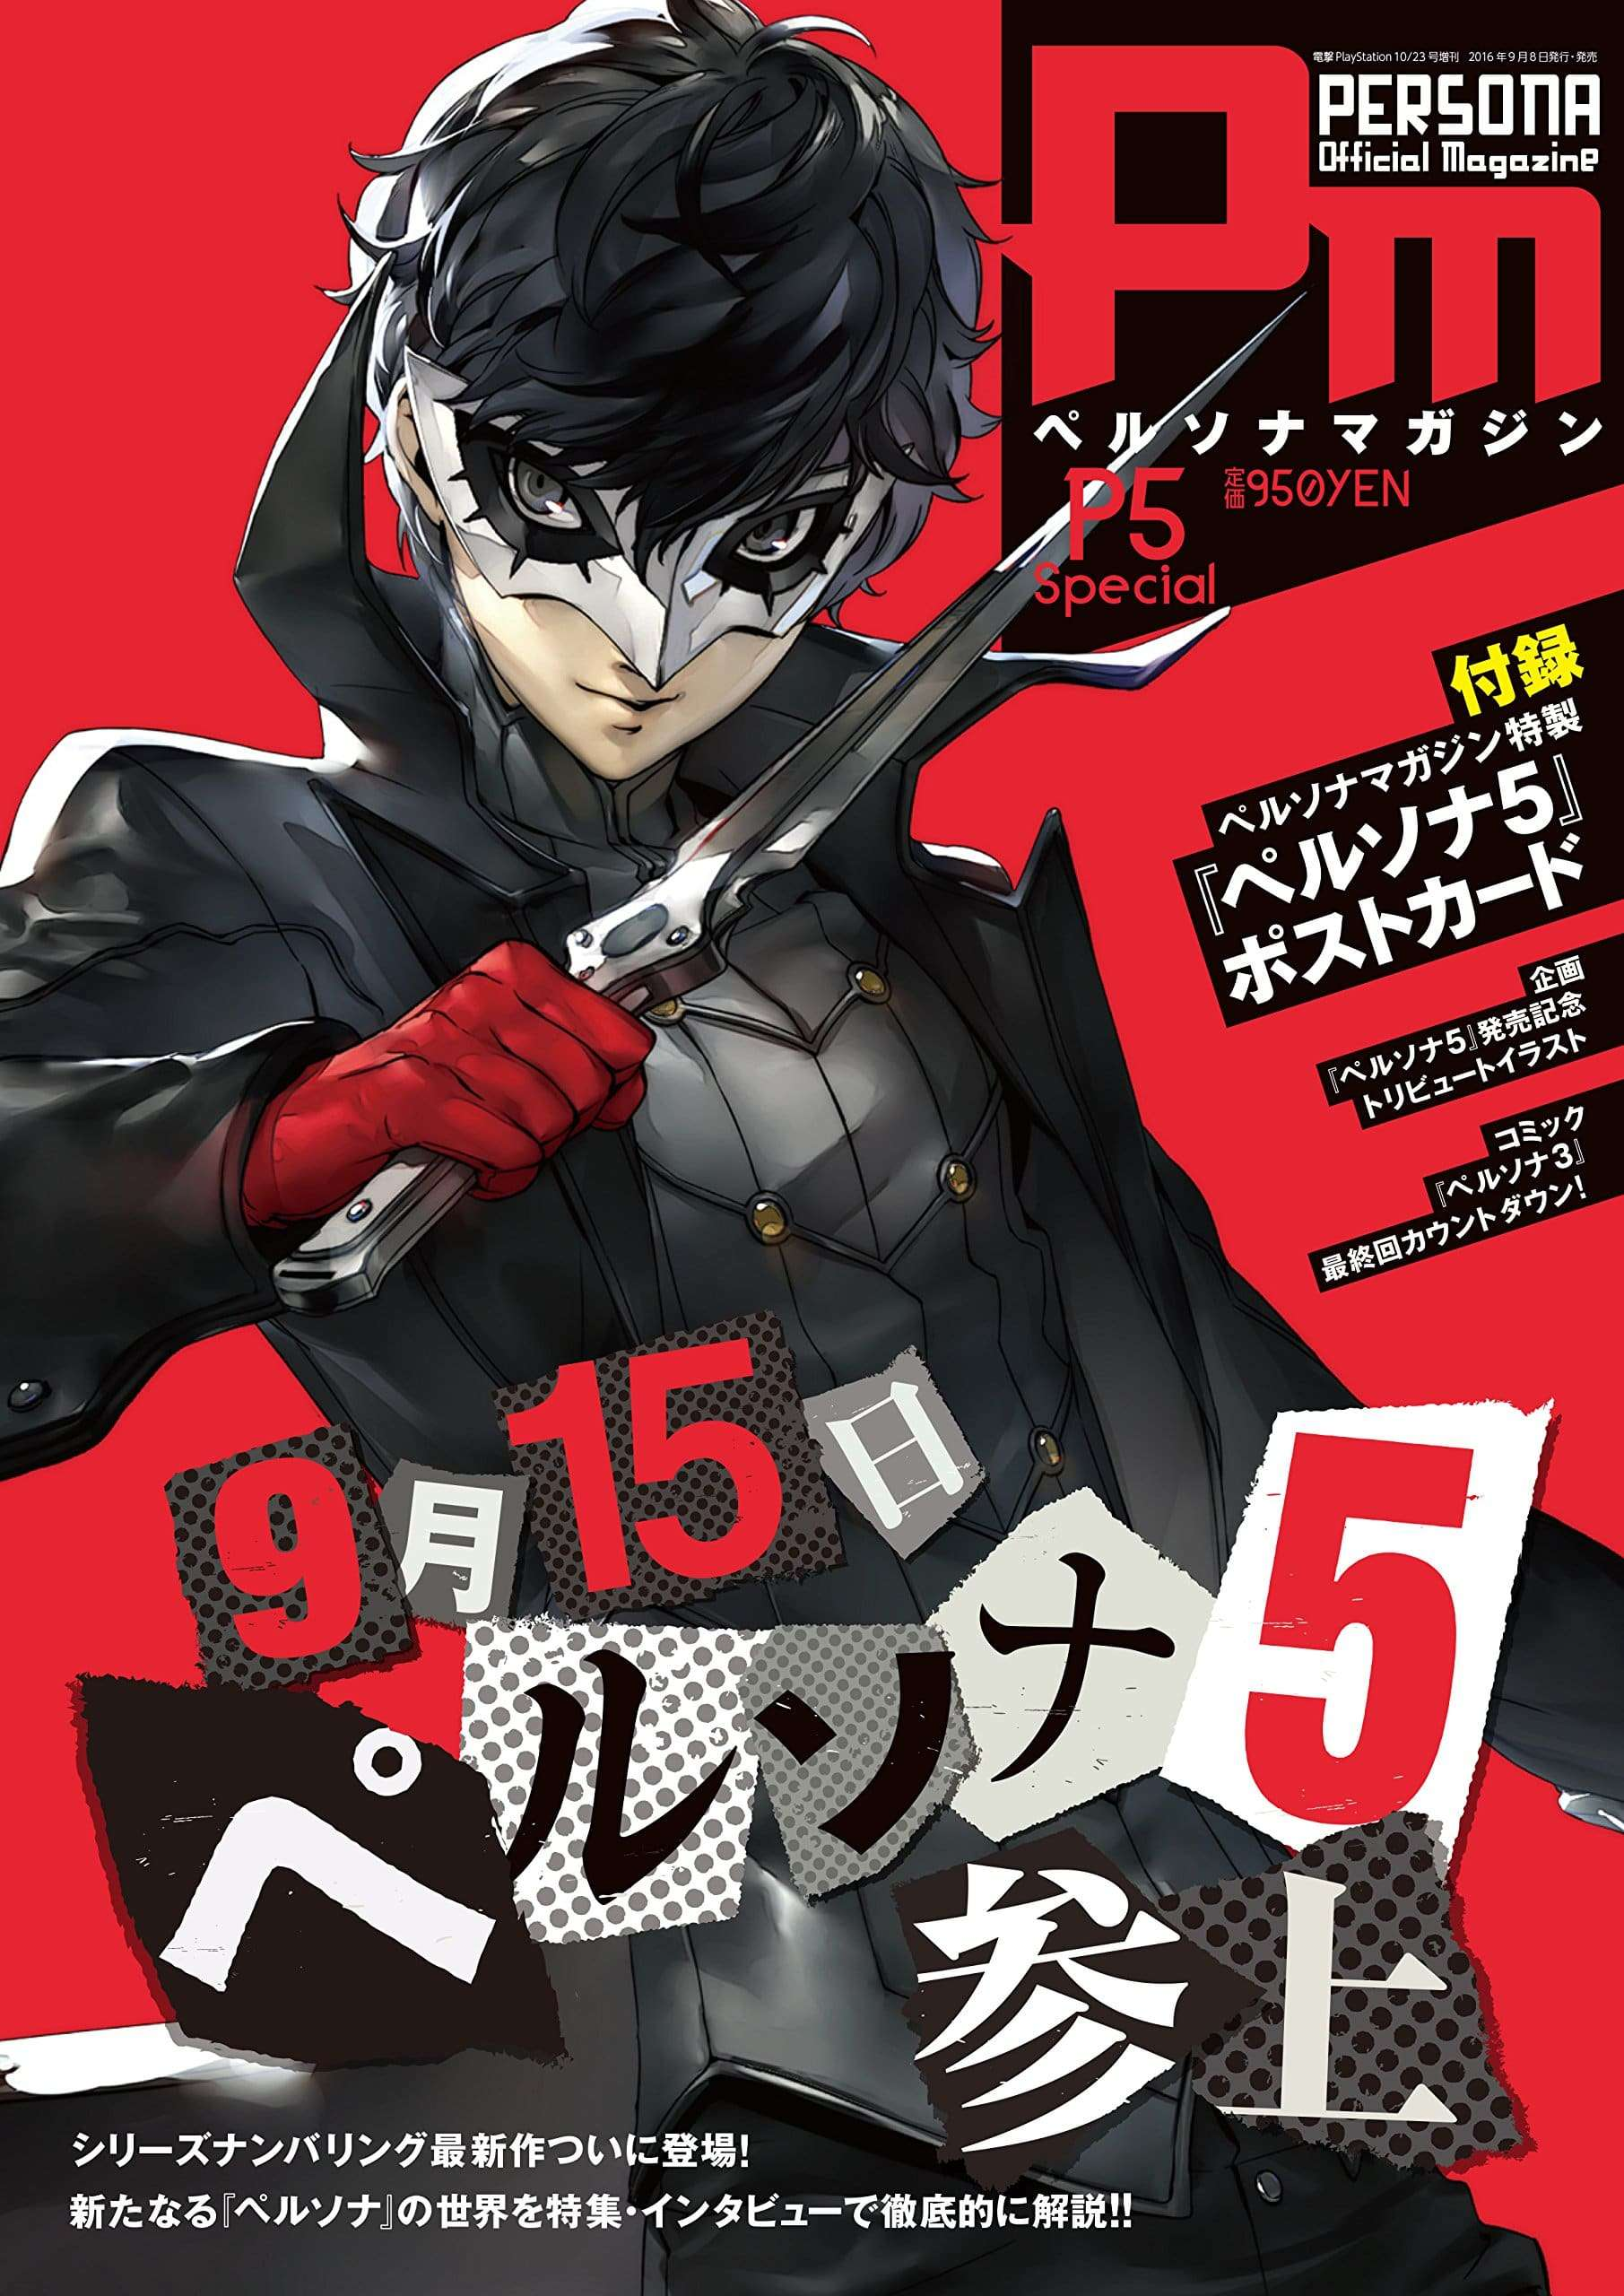 persona magazine p5 special 2016 issue detailed persona central